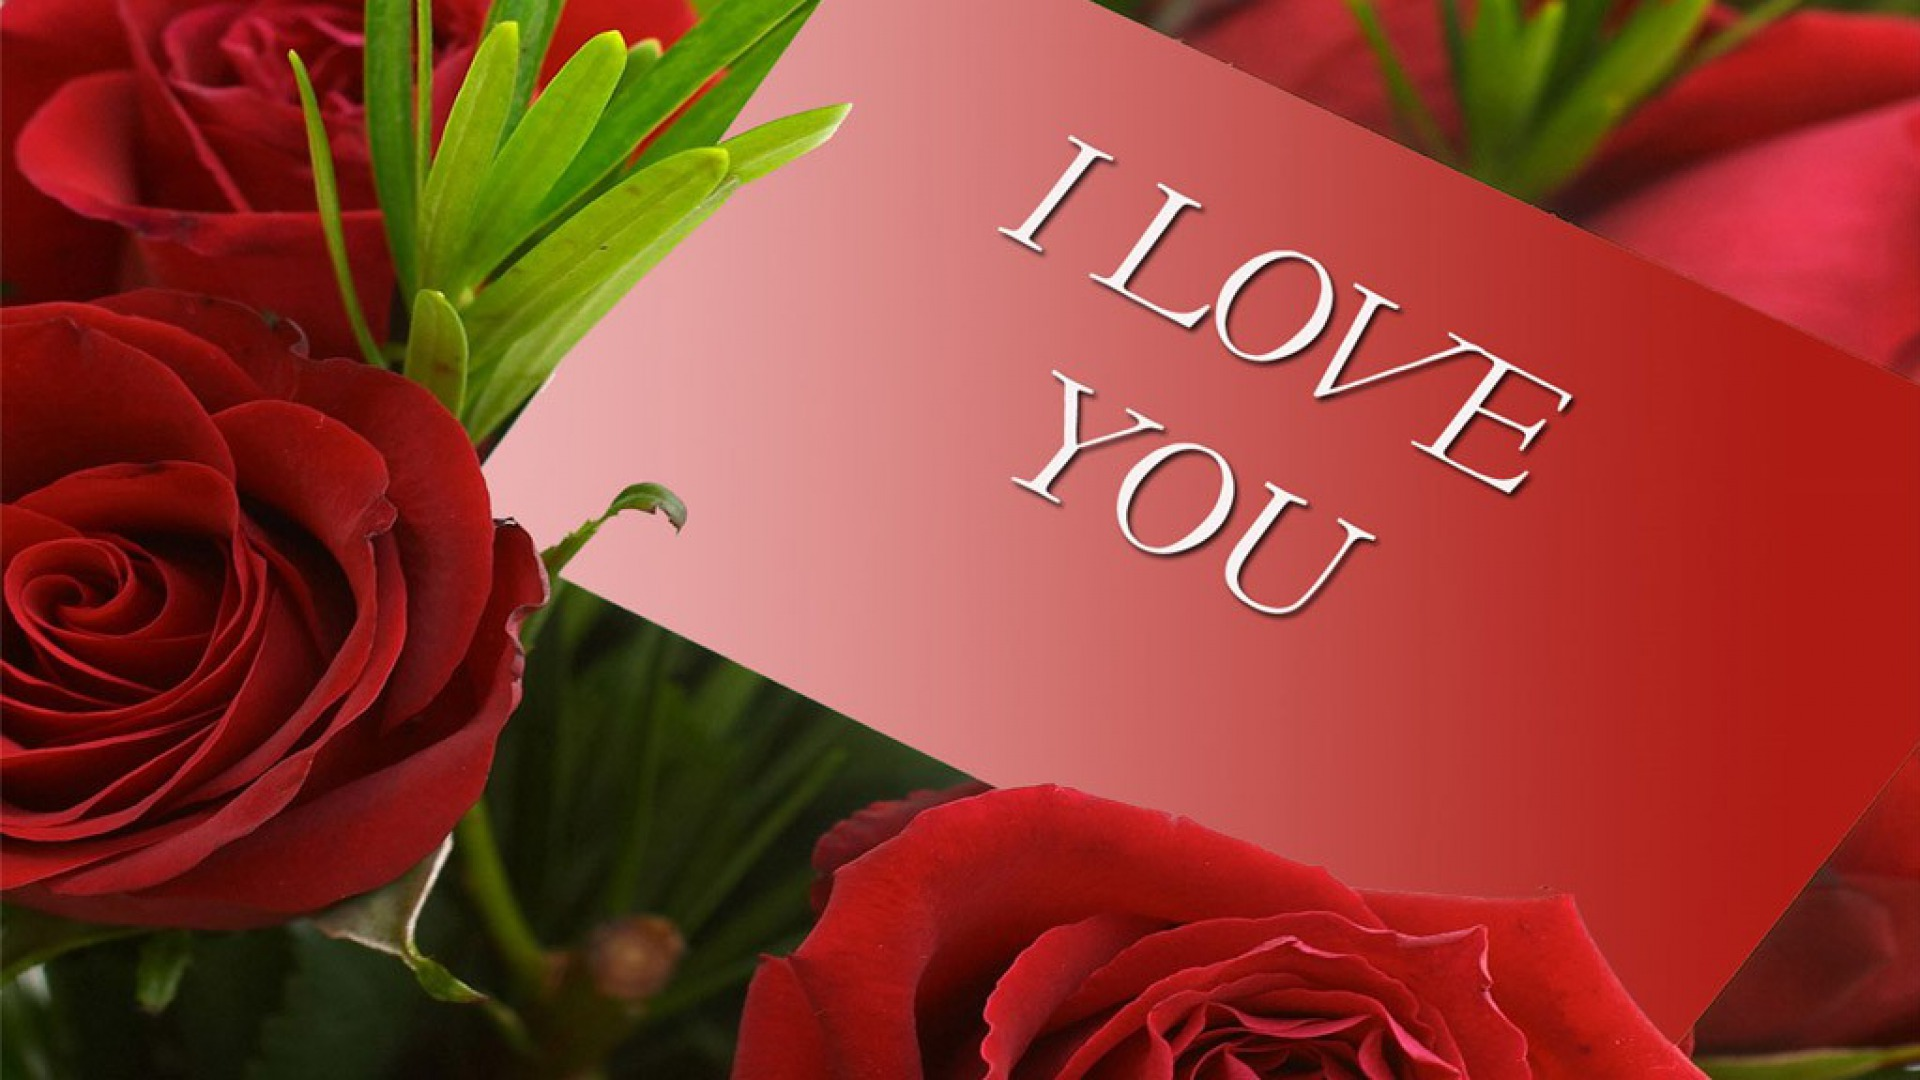 Free Download Hd Wallpaper Valentine I Love You Wallpapers55com